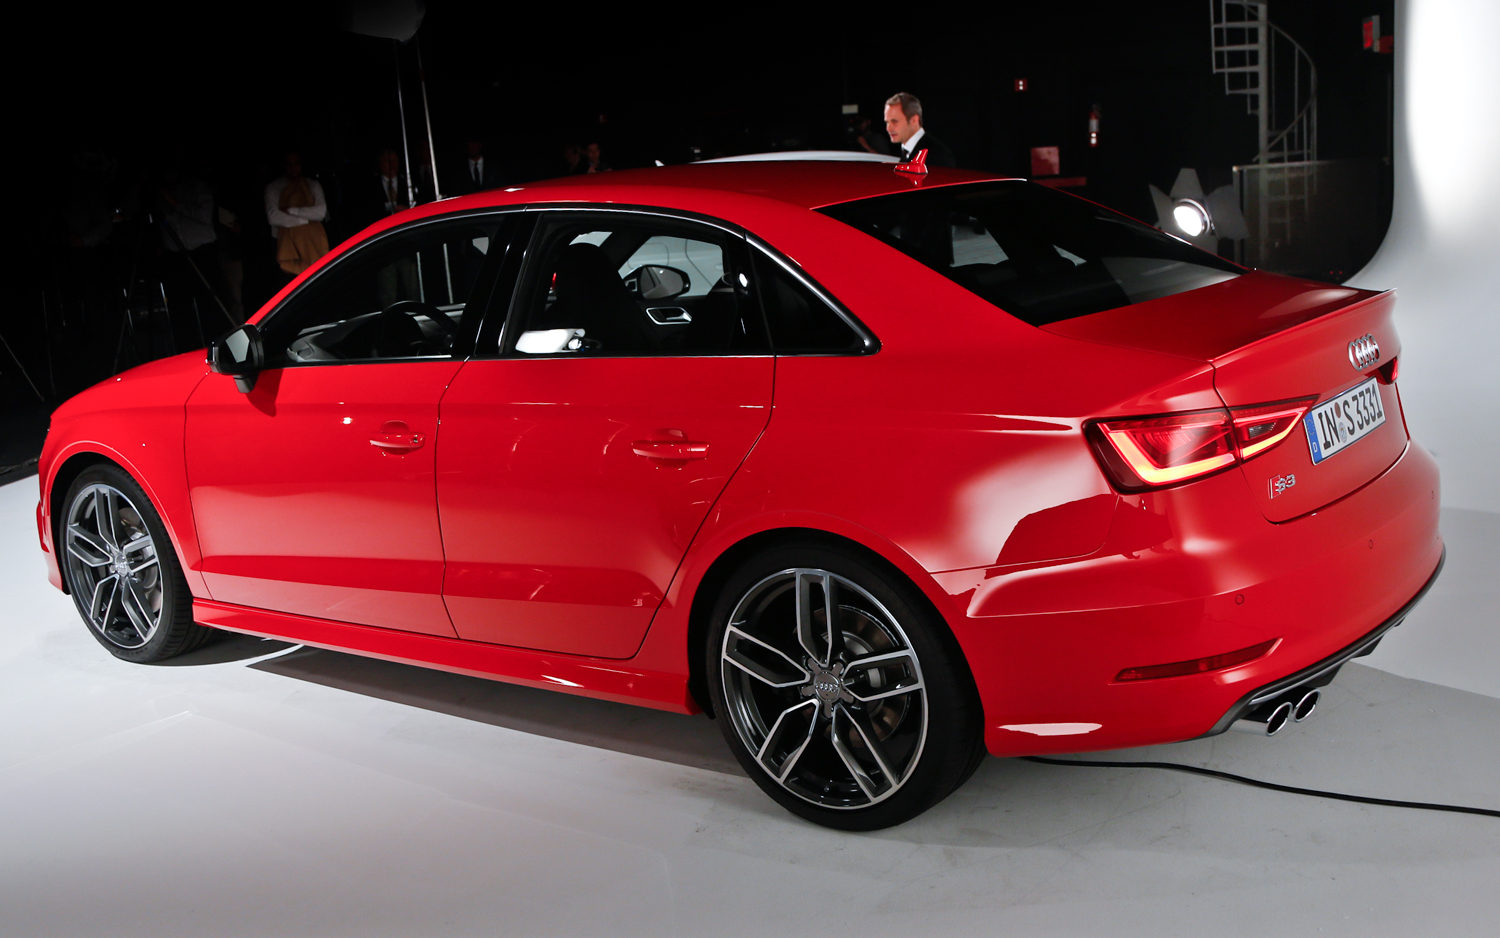 2015 Audi S3 Sedan Rear Side Preview (View 3 of 10)